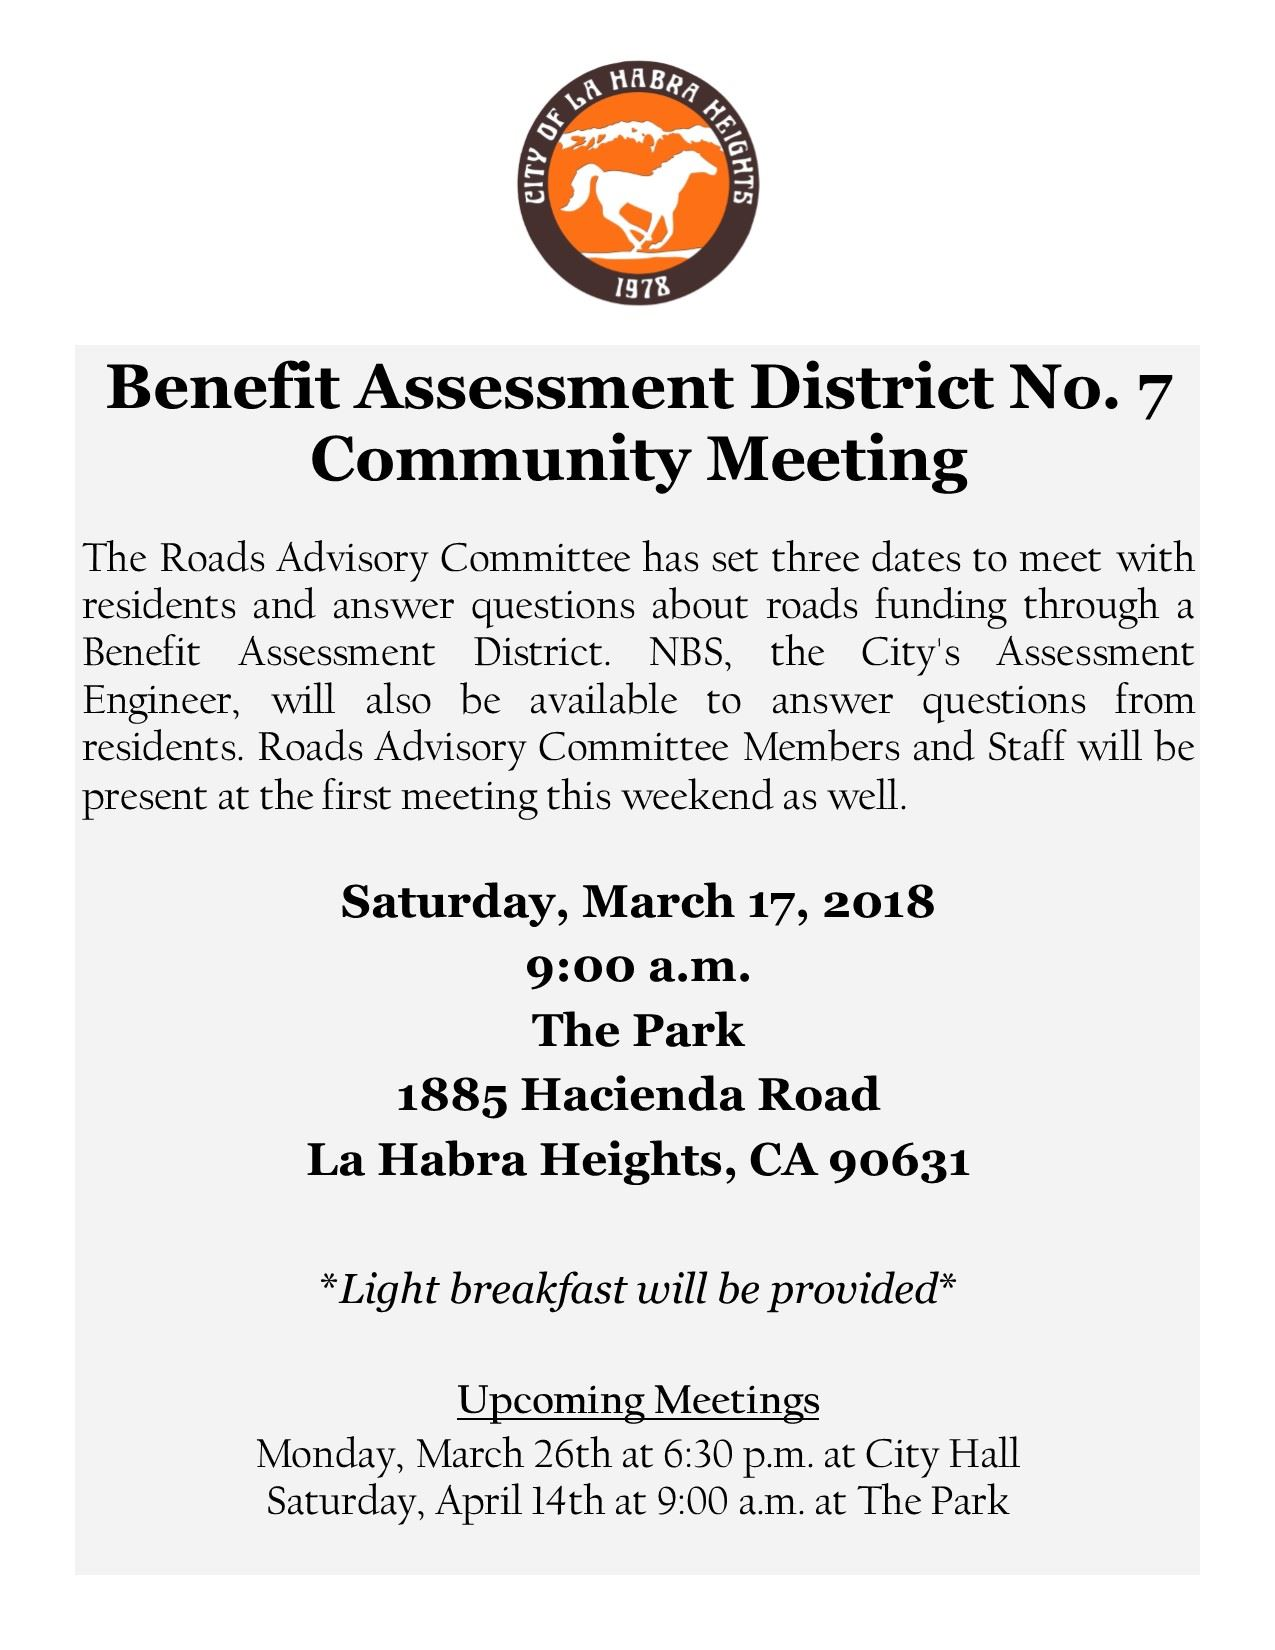 Benefit Assessment District No. 7 Community Meeting Flyer